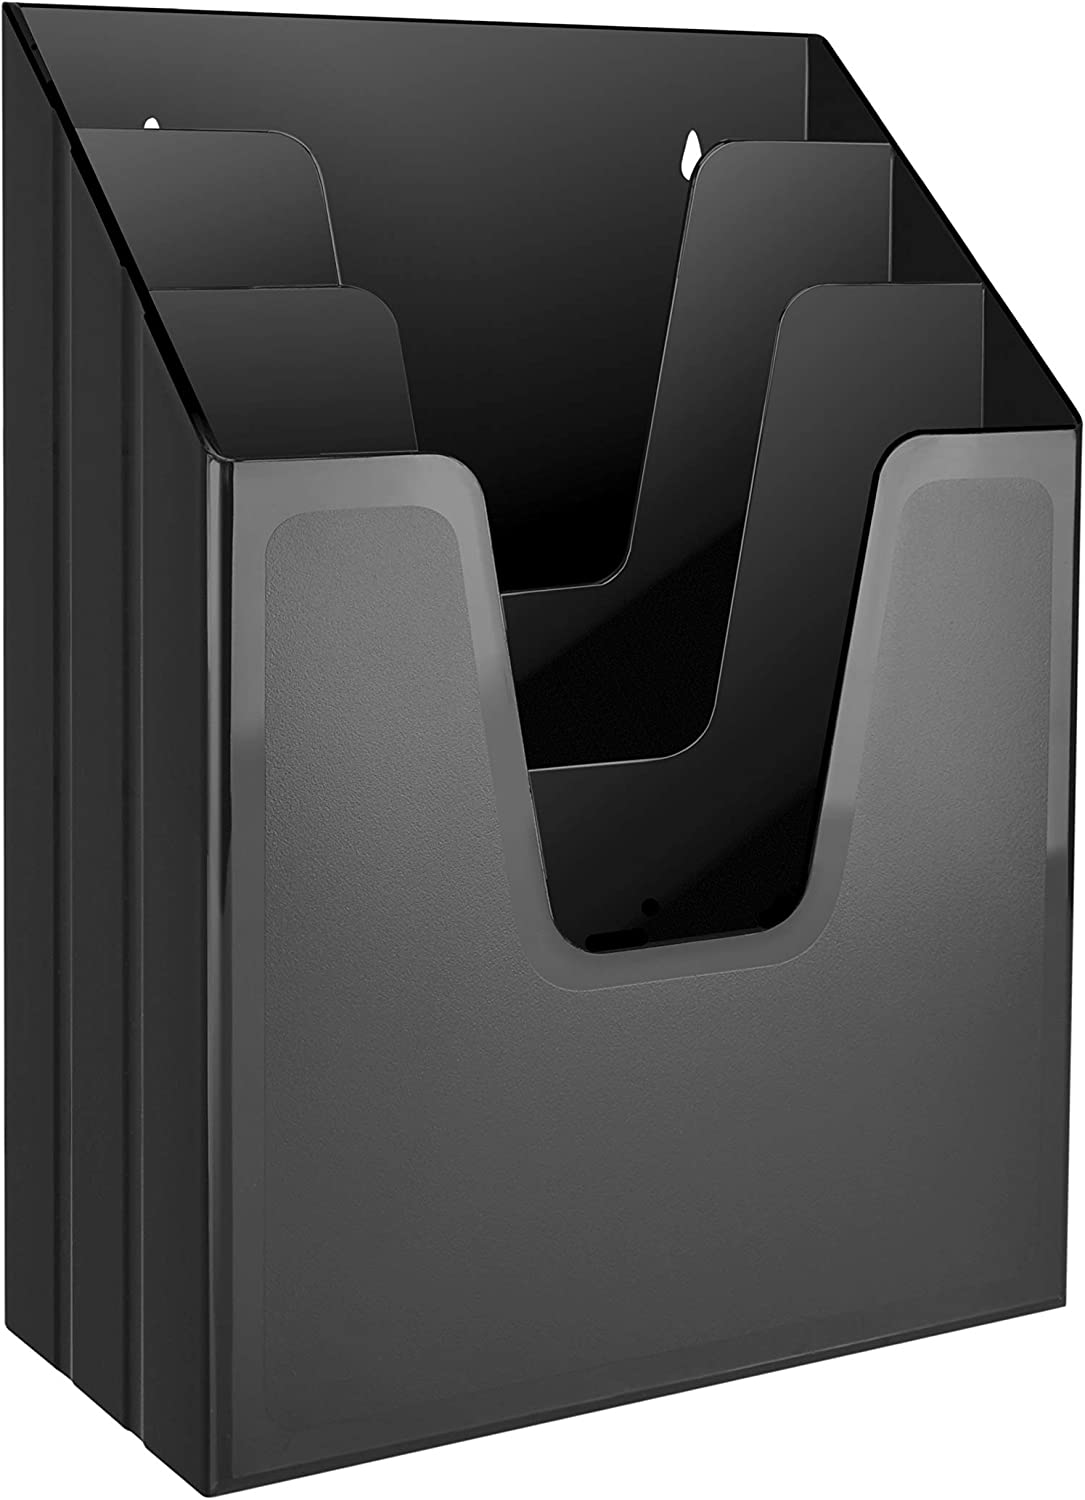 Acrimet Vertical Triple File Folder Organizer (Black Color)